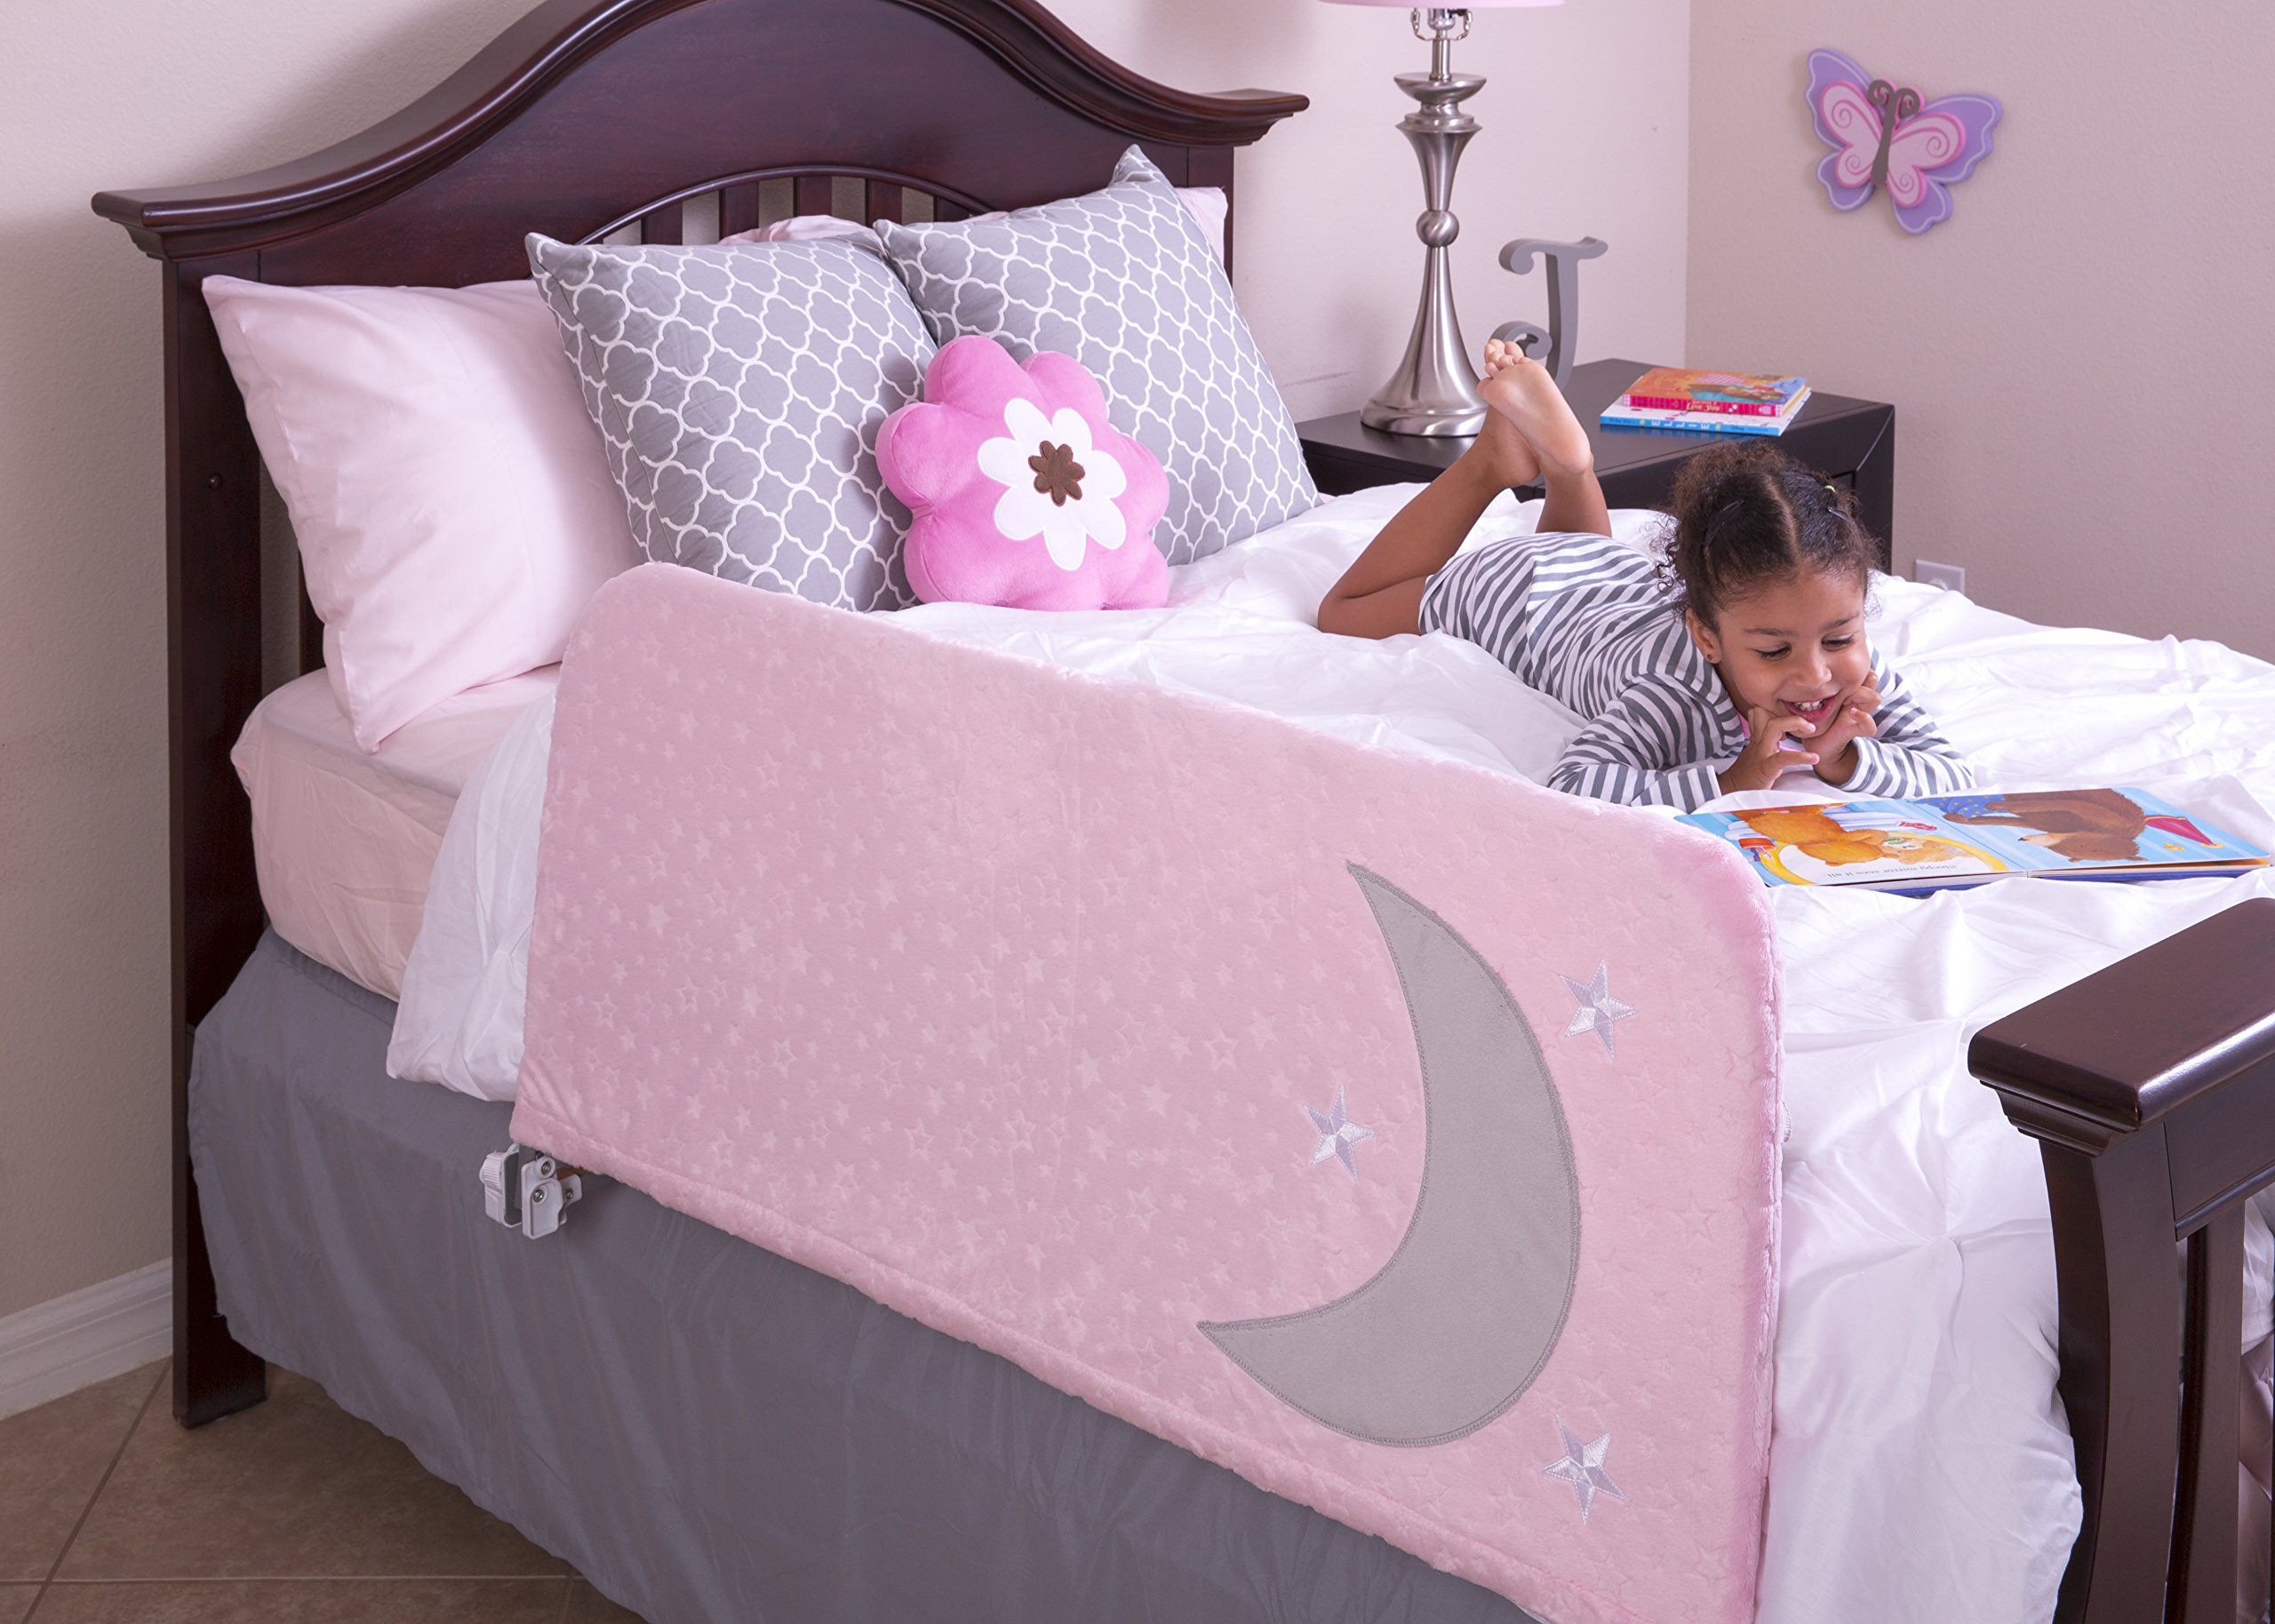 Cosie Covers l Bedrail Cover for Toddlers and Kids Guardrails | with Inside Pocket for Toys and Books - Enhances Appearance of Portable Child Safety Side Rails (Twinkle Pink, Large)